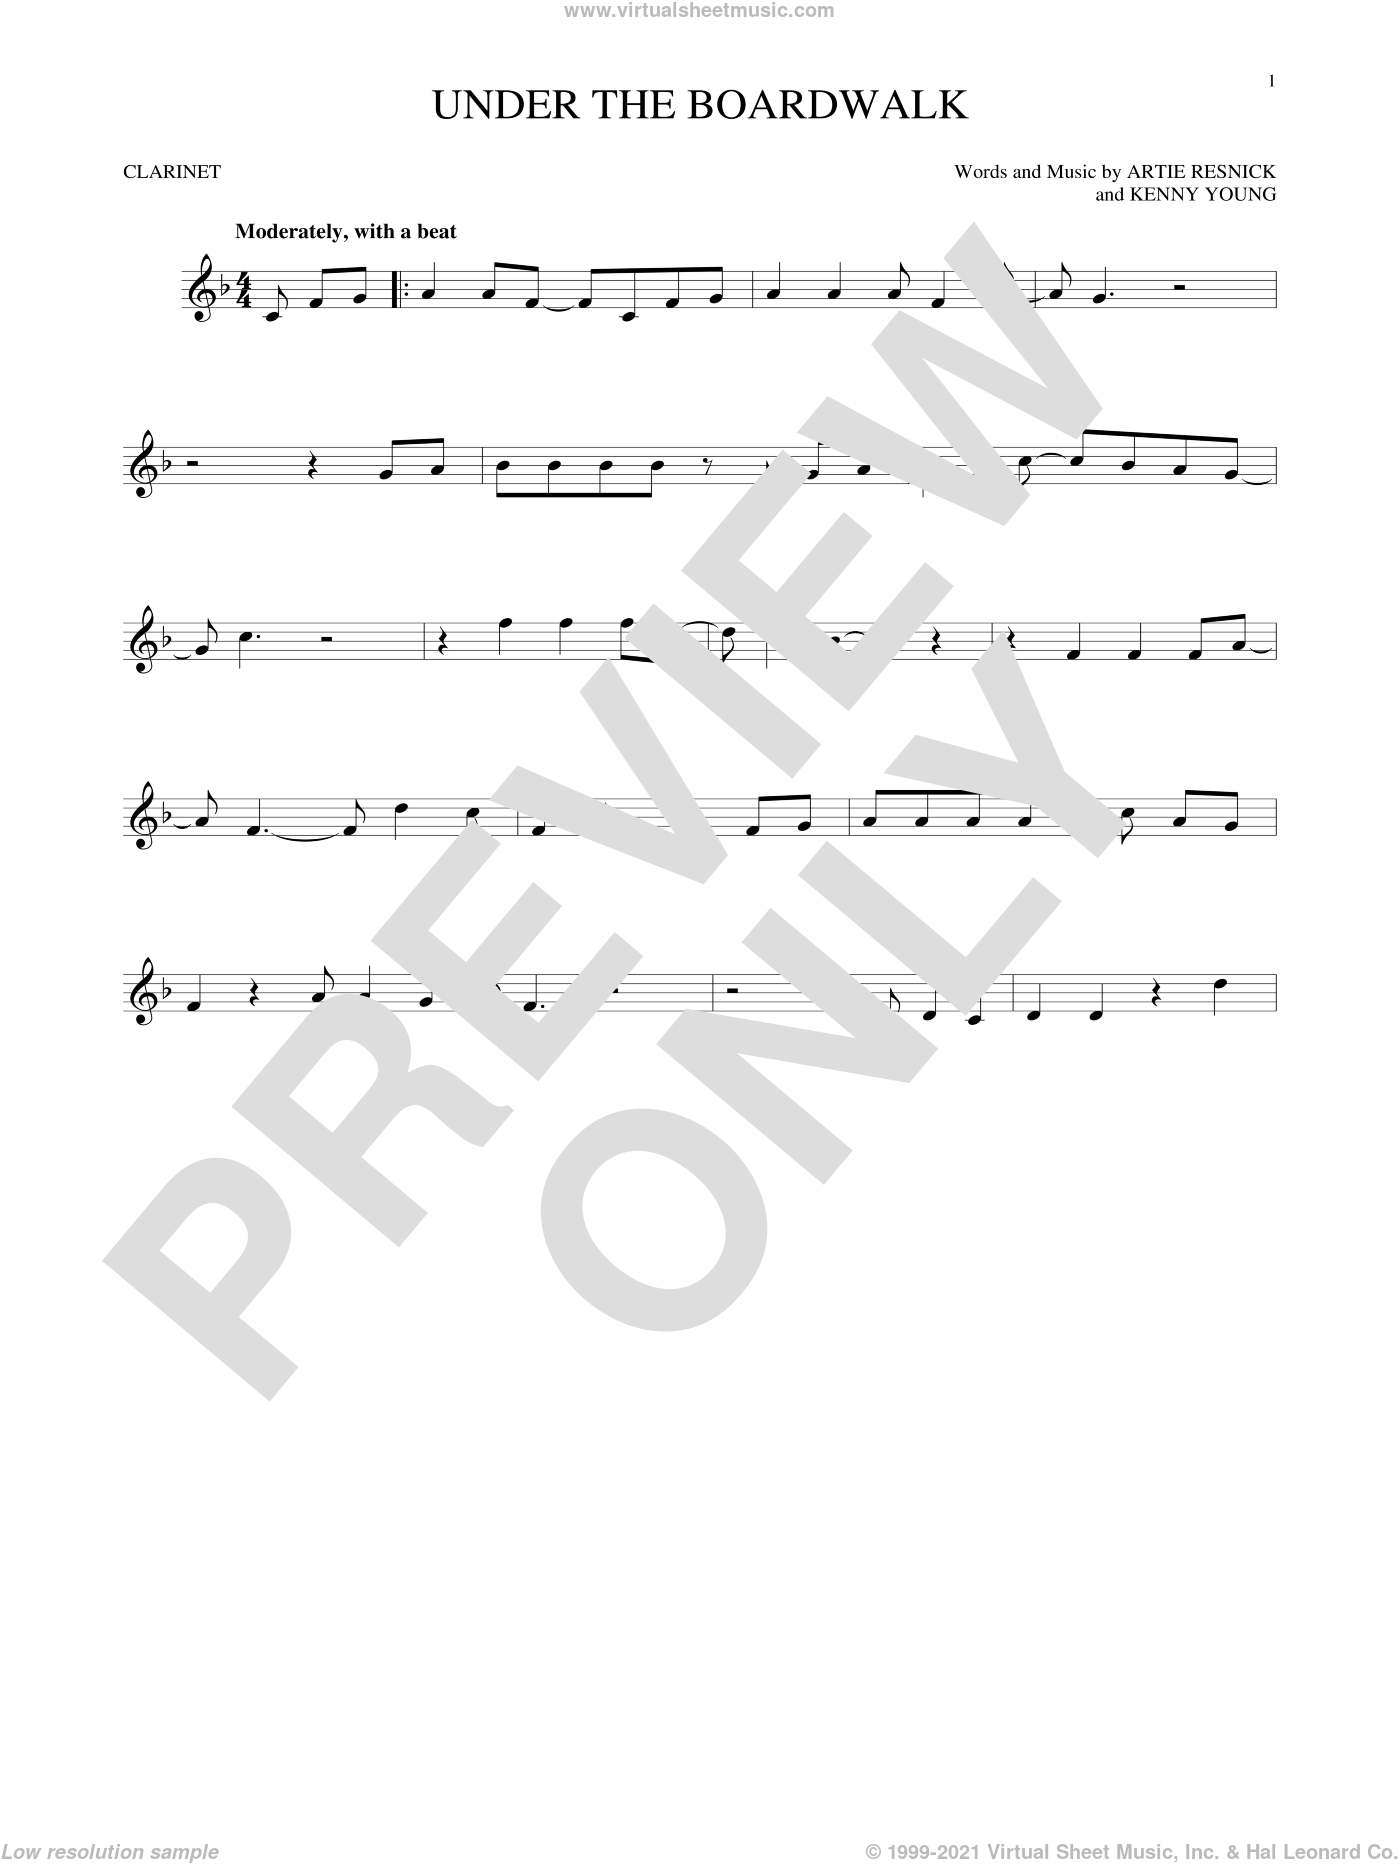 Under The Boardwalk sheet music for clarinet solo by The Drifters, intermediate skill level